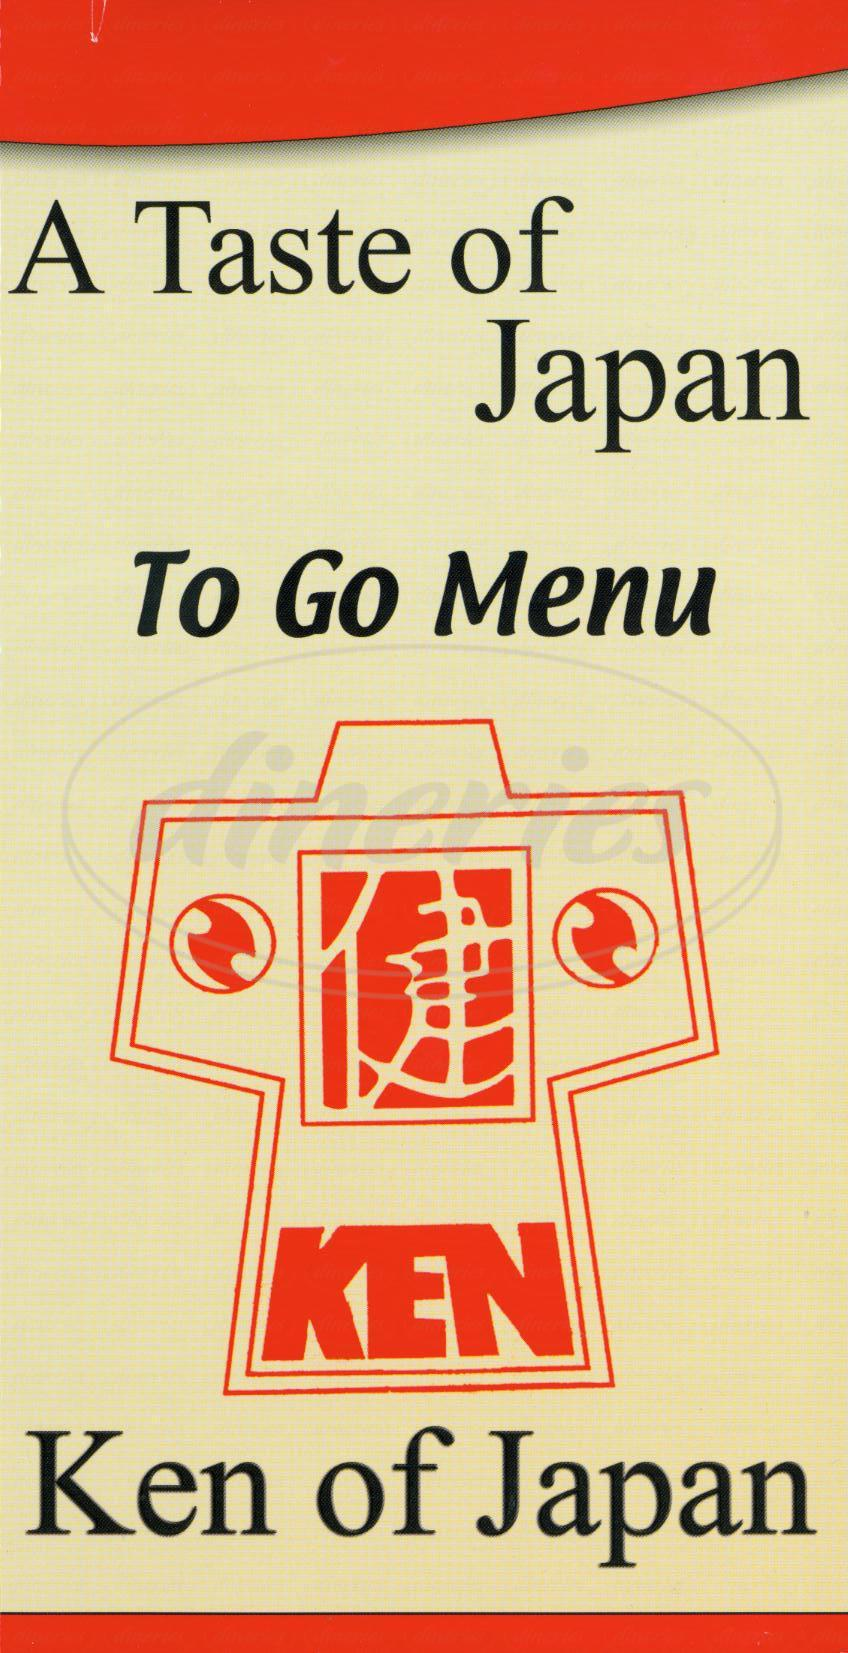 menu for Ken of Japan